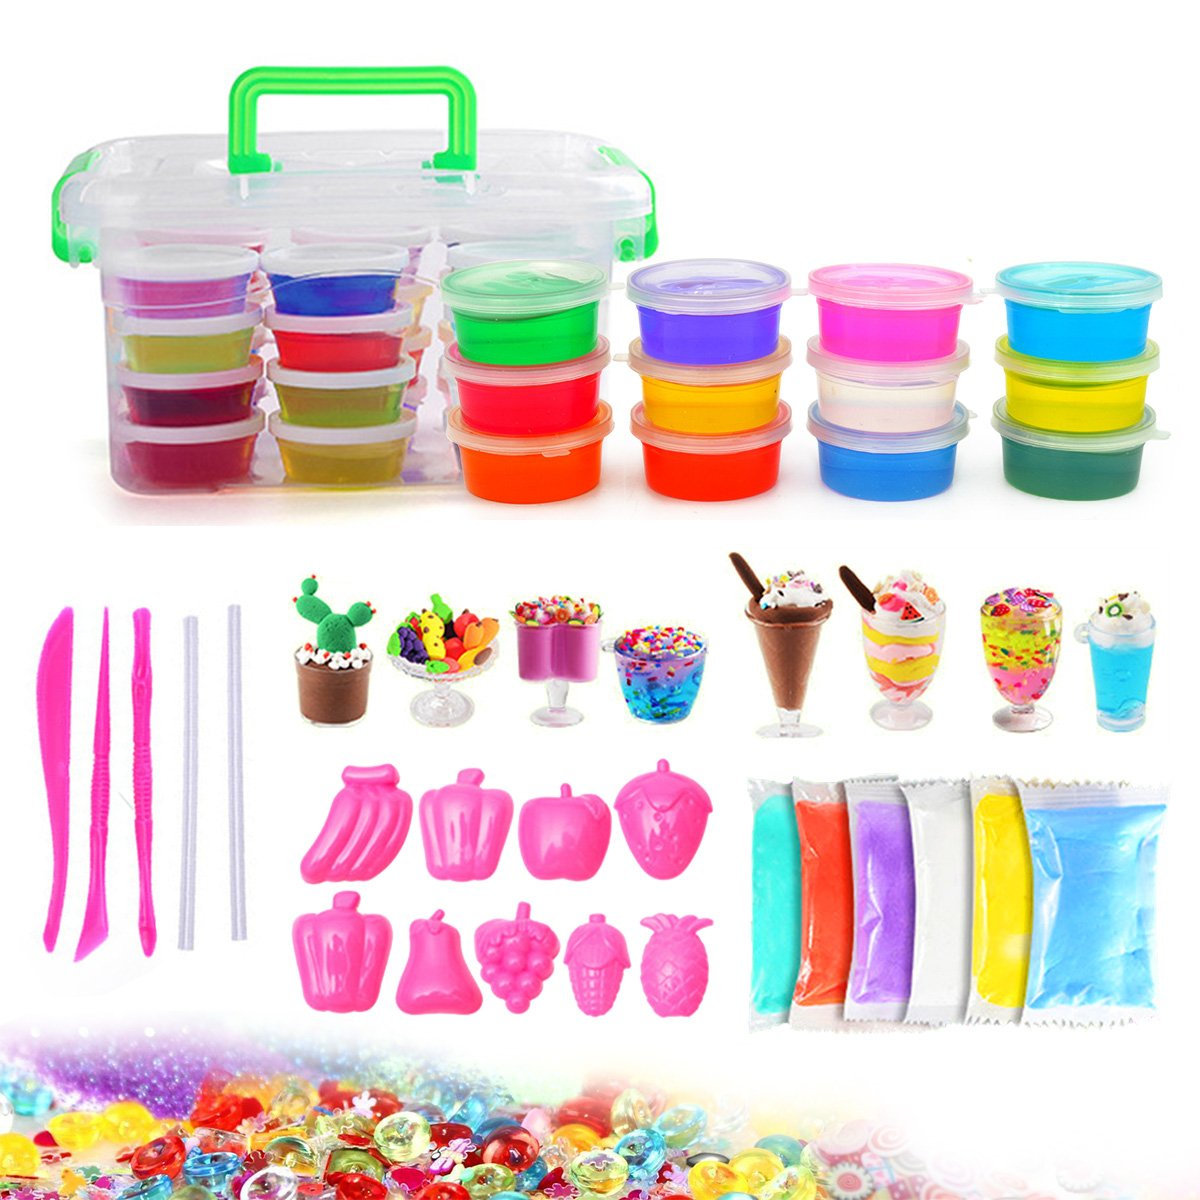 DIY Fluffy Slime Kit - 46 Pack Clear Slime Making Kit Supplies for Kids, Comes with Ultimate Clear Slime, Modeling Dry Clay, Fruit Mold, Glitter Jars, Foam Balls, Mixed Decoration for Kids Aged 6+